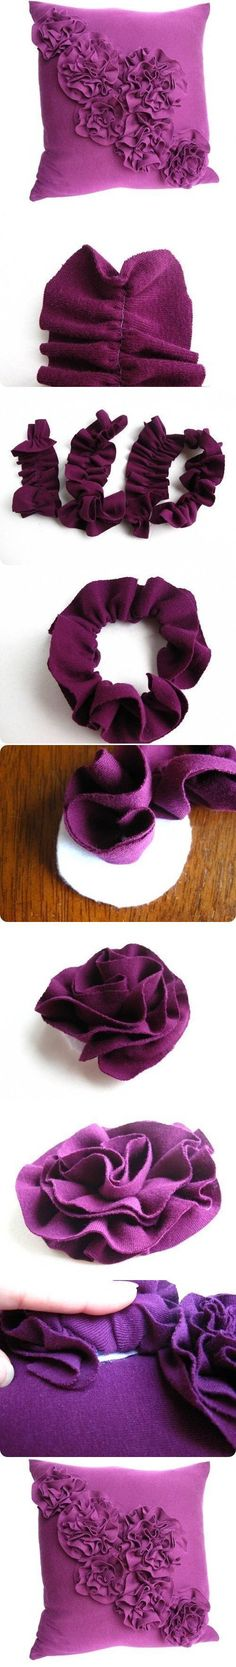 DIY Flower Pillow Decoration- would be neat in fleece fabric. For the reading corner.